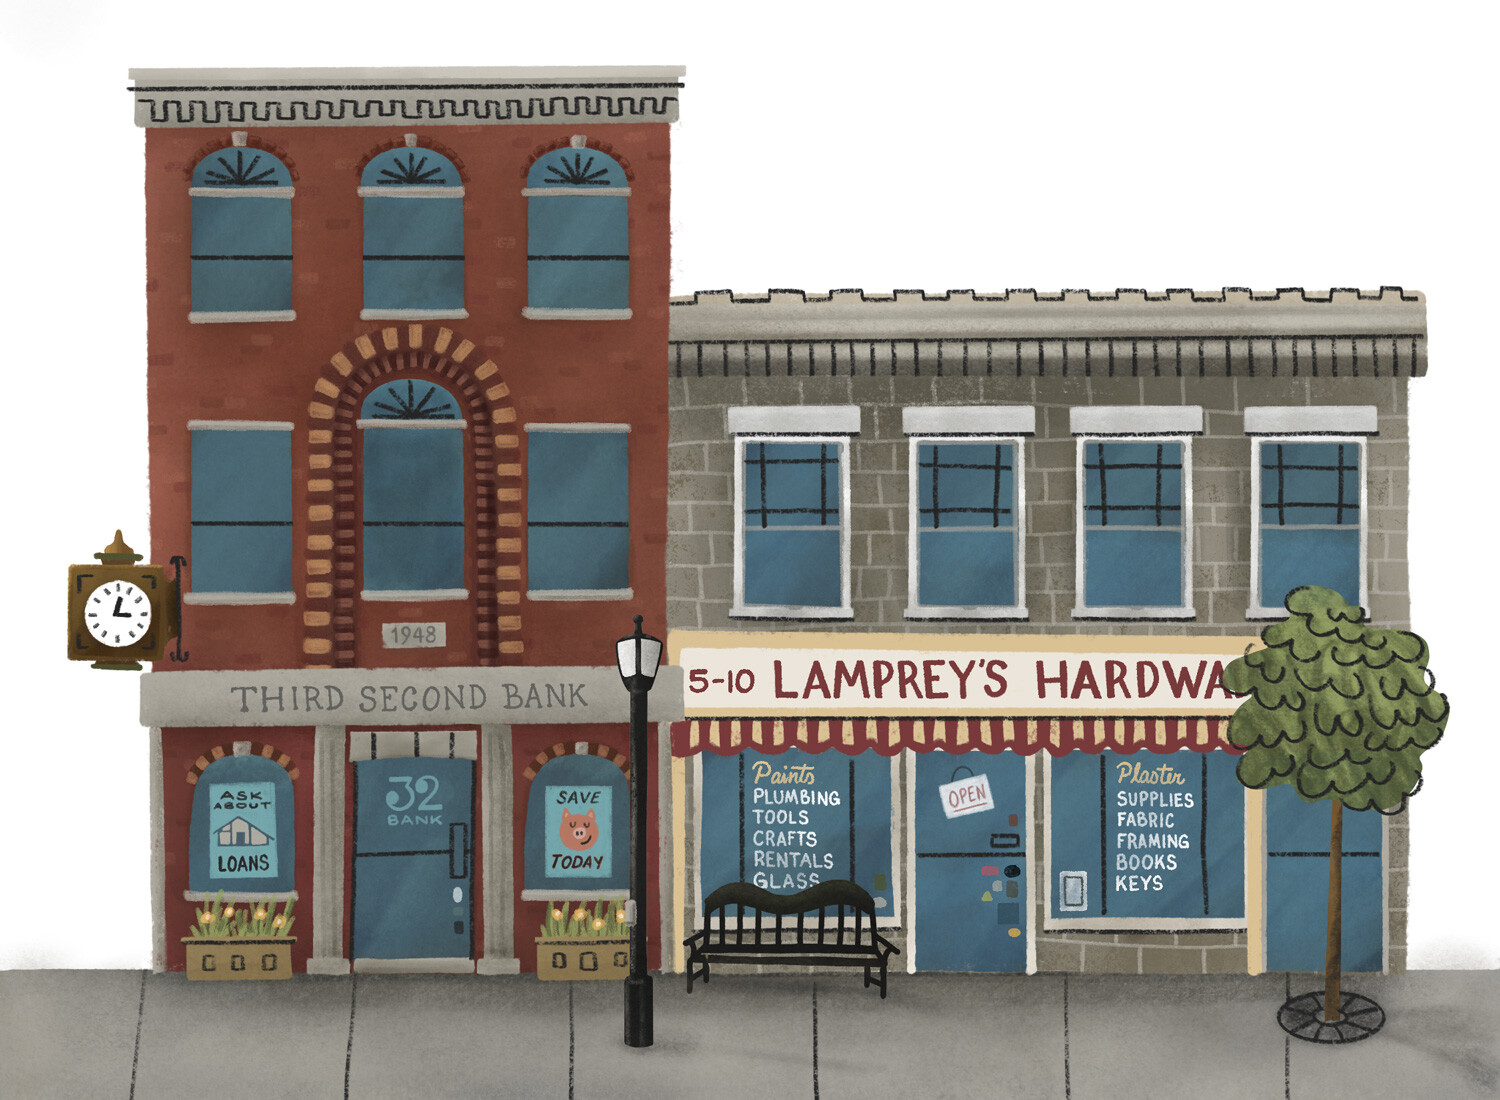 The local bank and hardware store